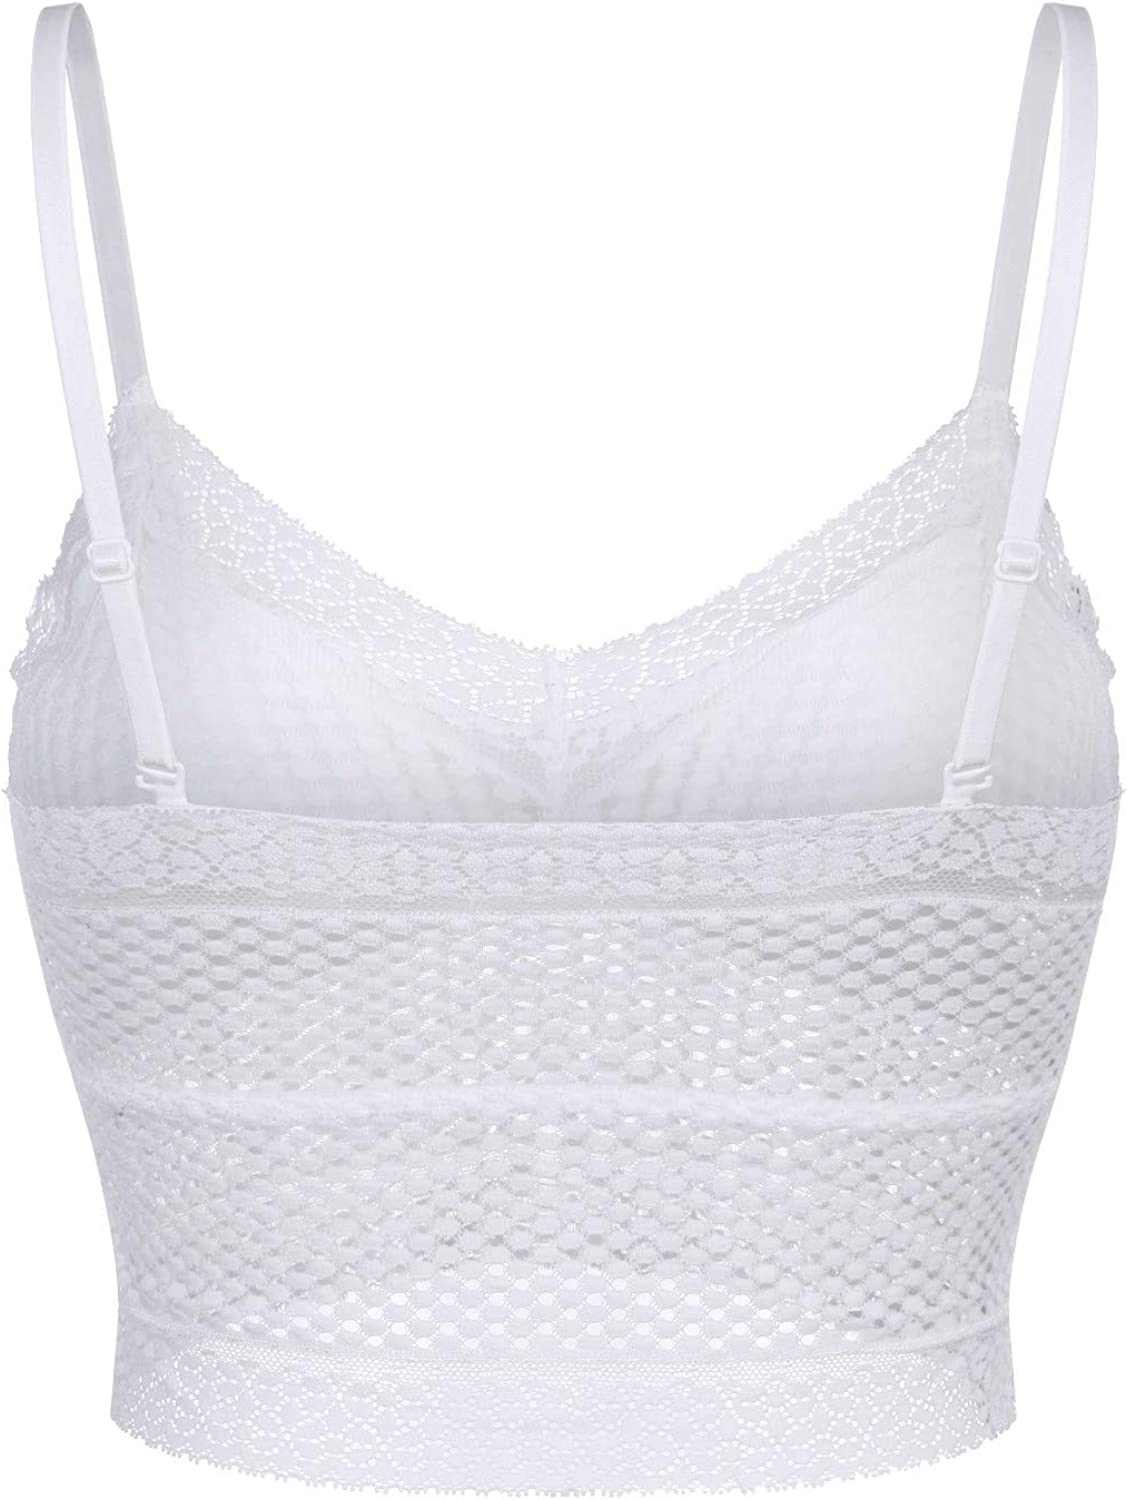 ManxiVoo Cami Lace Longline Bralette Padded Wirefree Bra V Neck Camisole Crop Top for Women Girls